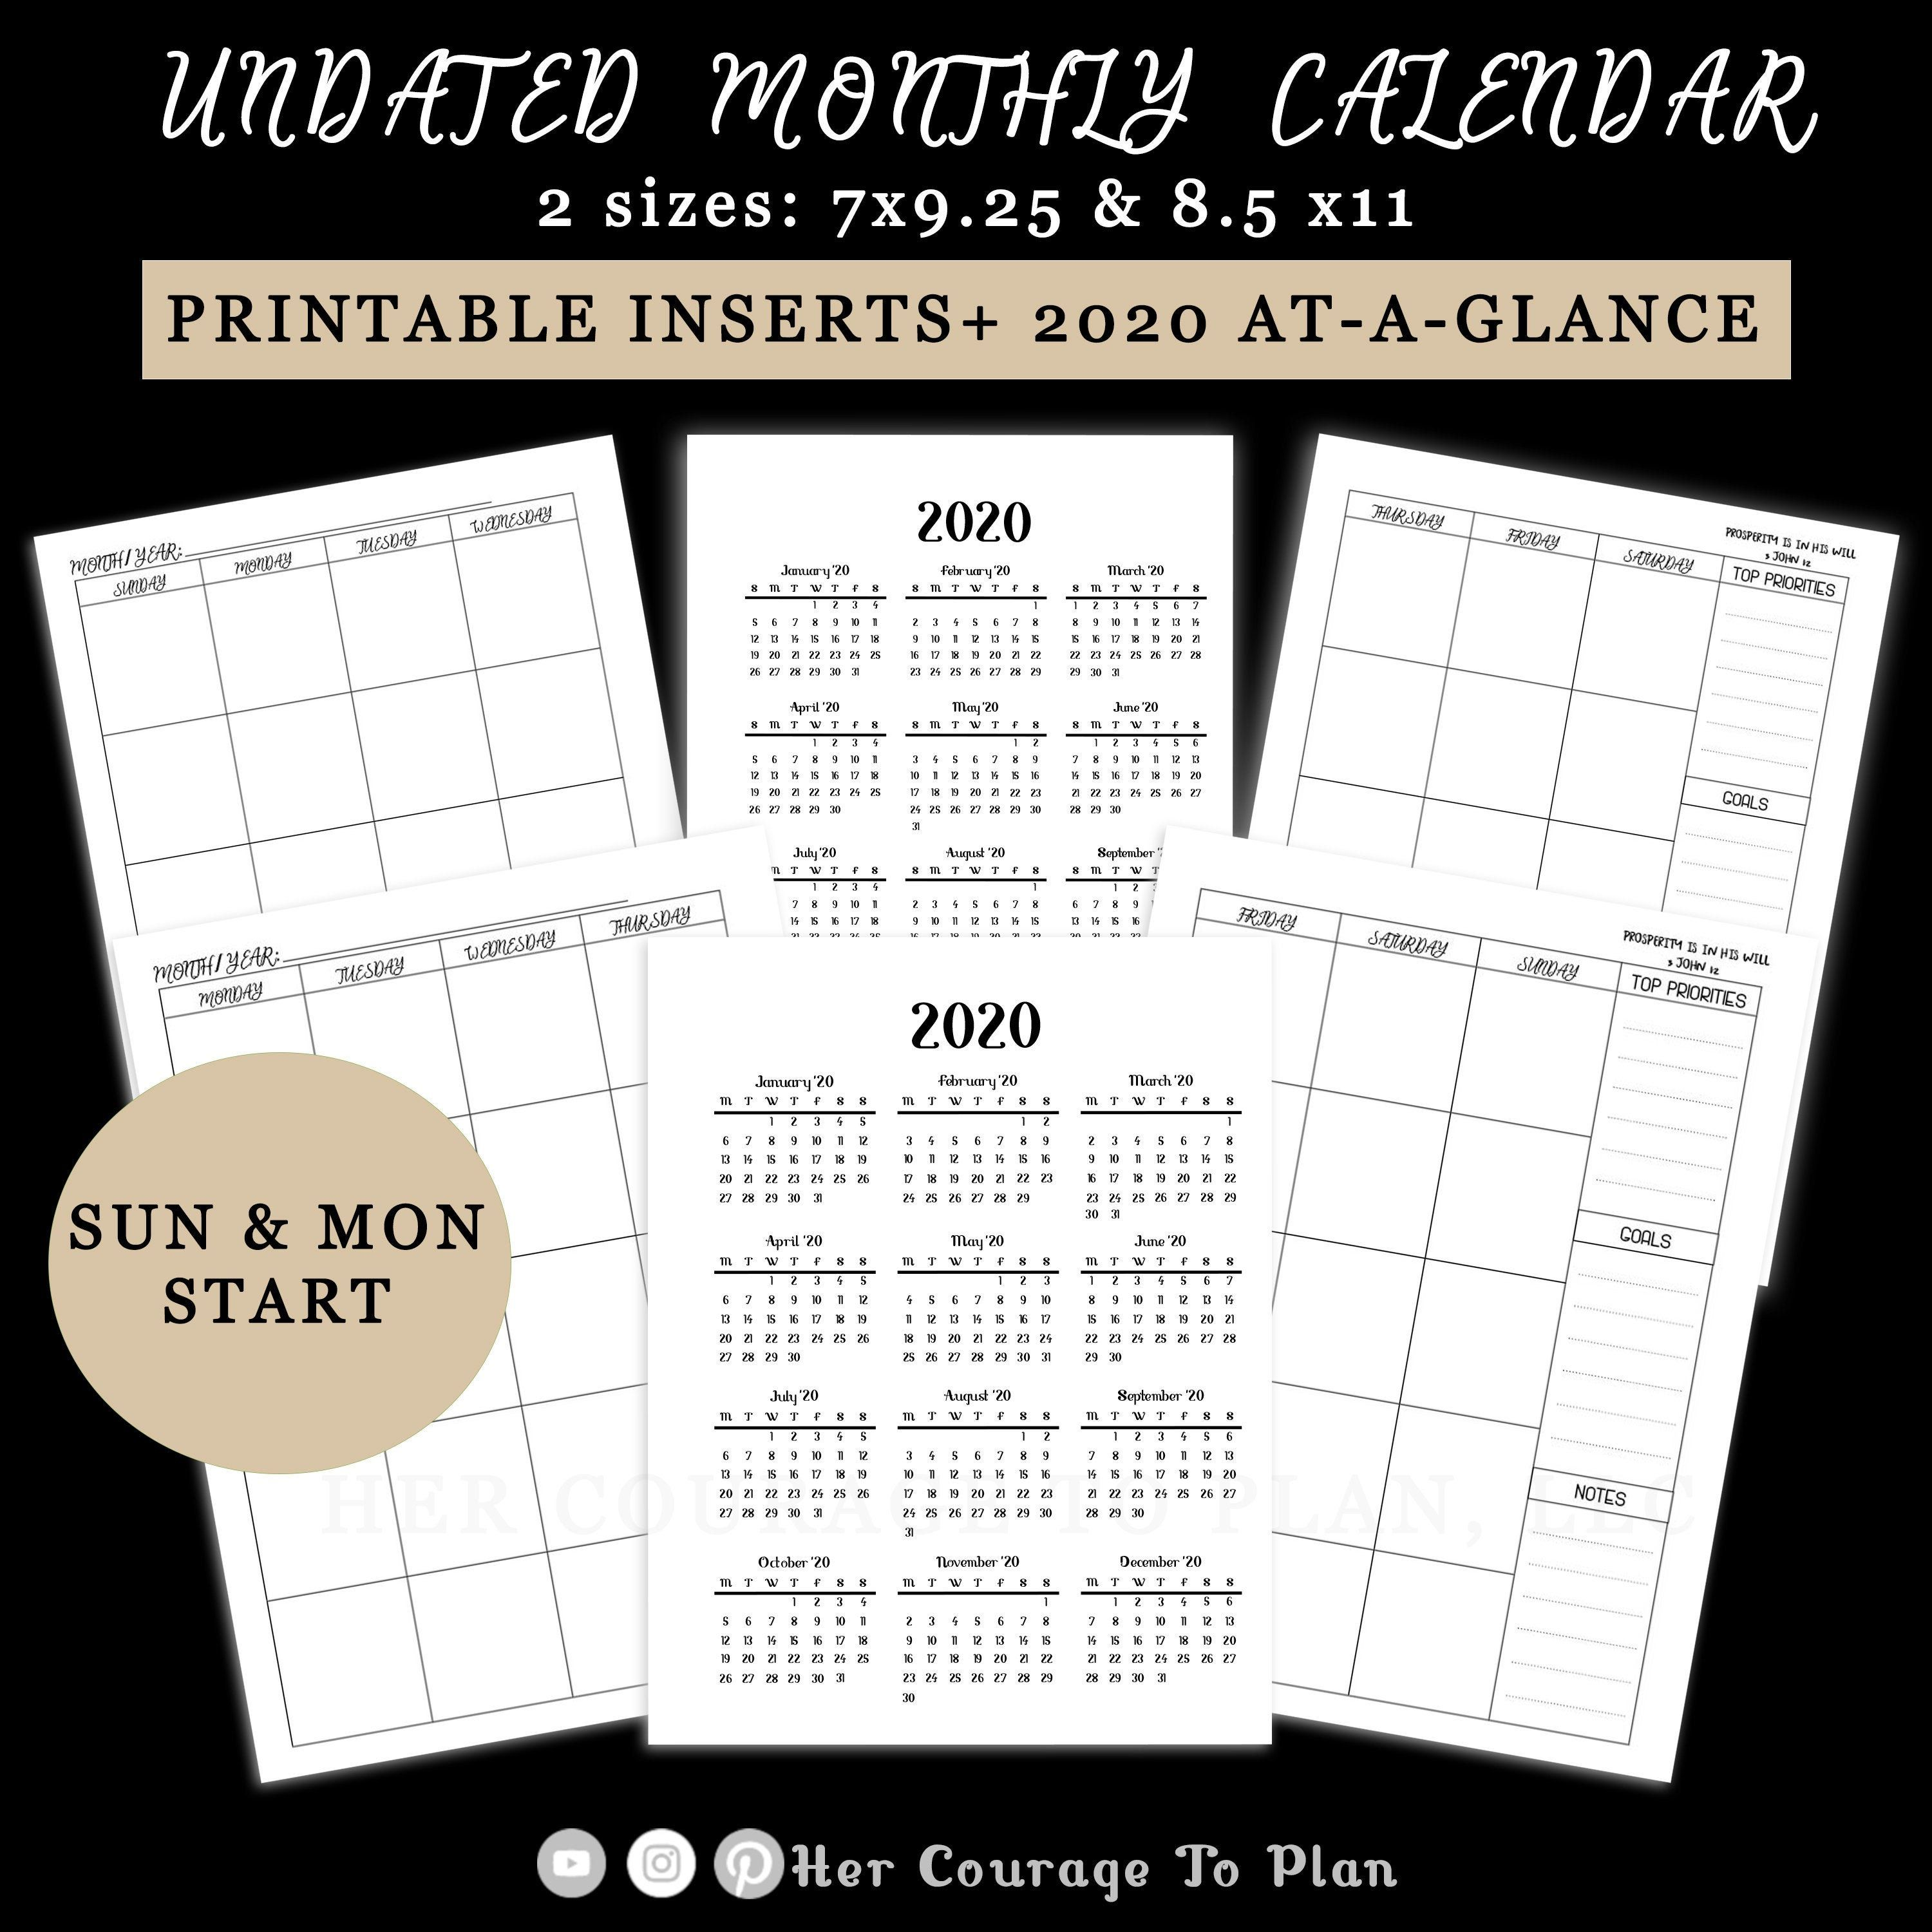 Monthly Calendar UNDATED Printable Planner Insert, 2020 At